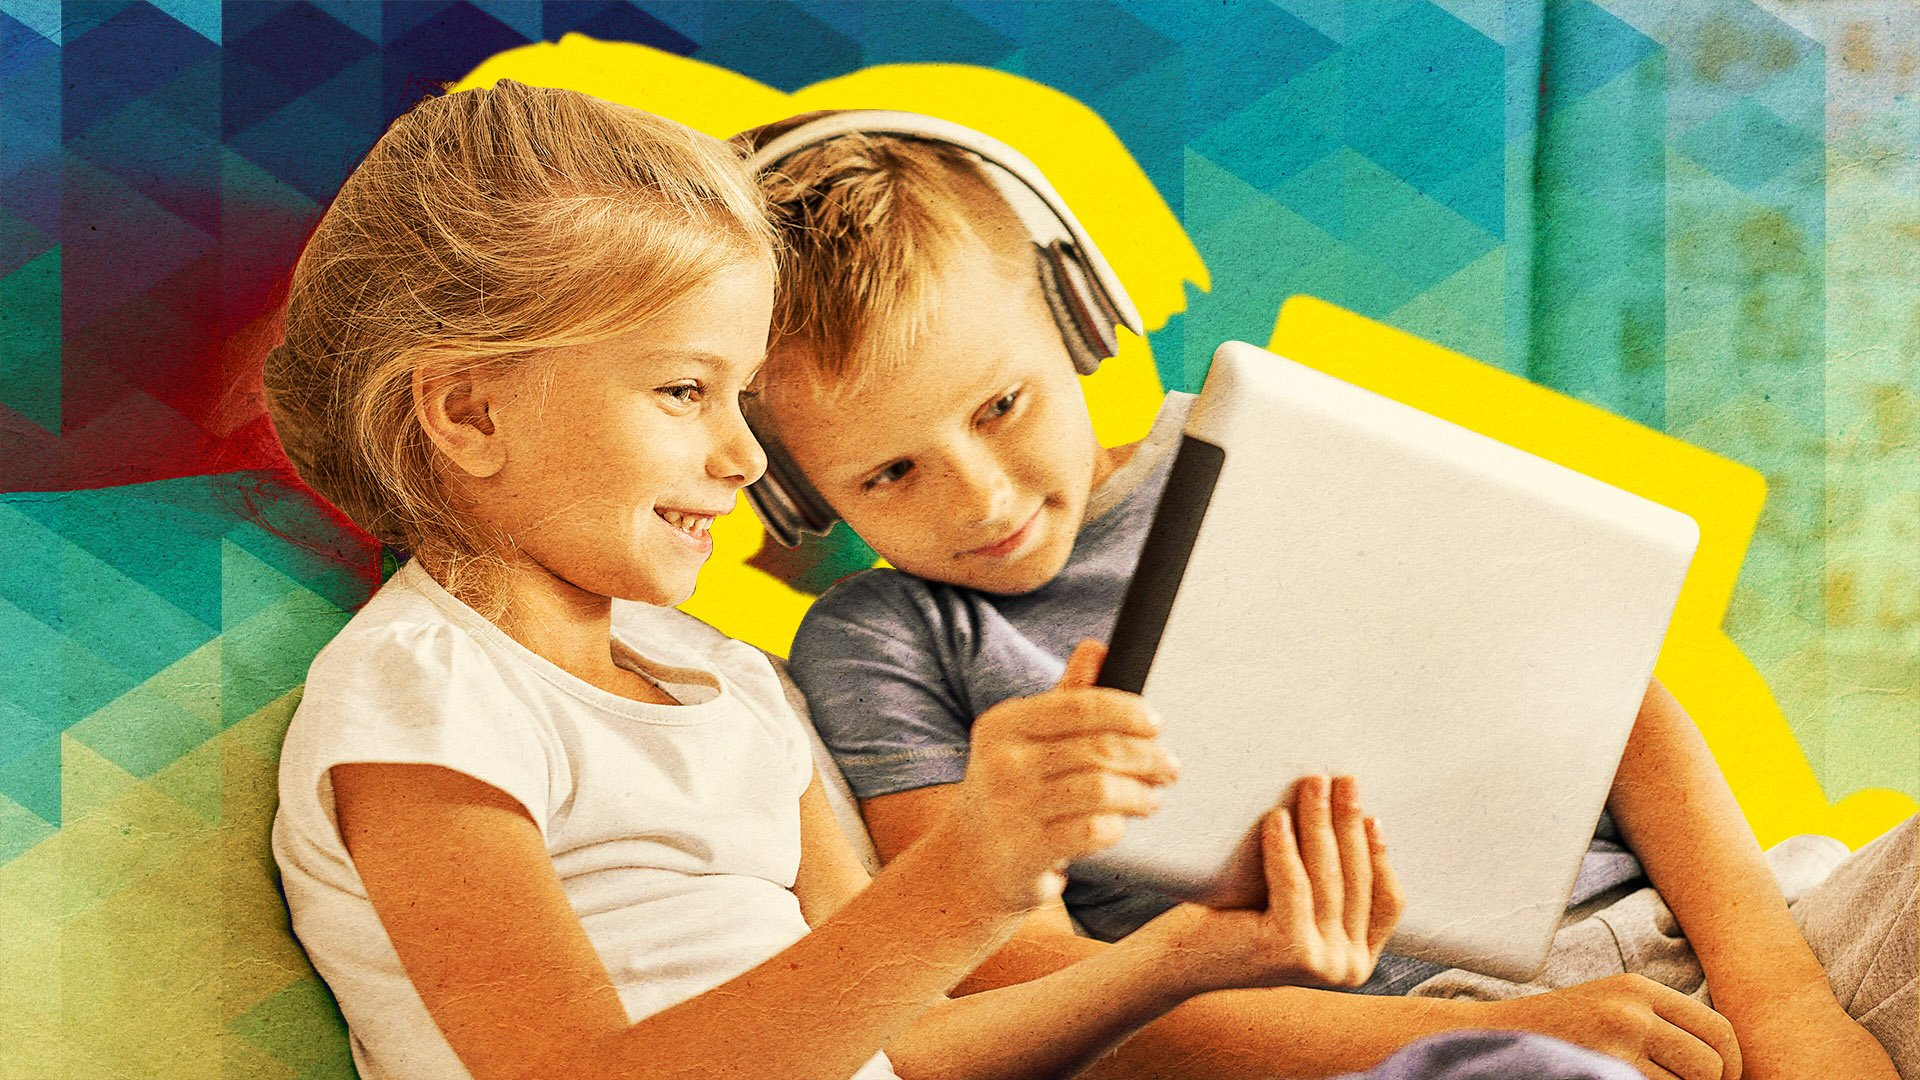 Amazon Rapids Reading App for Kids is Now Totally Free